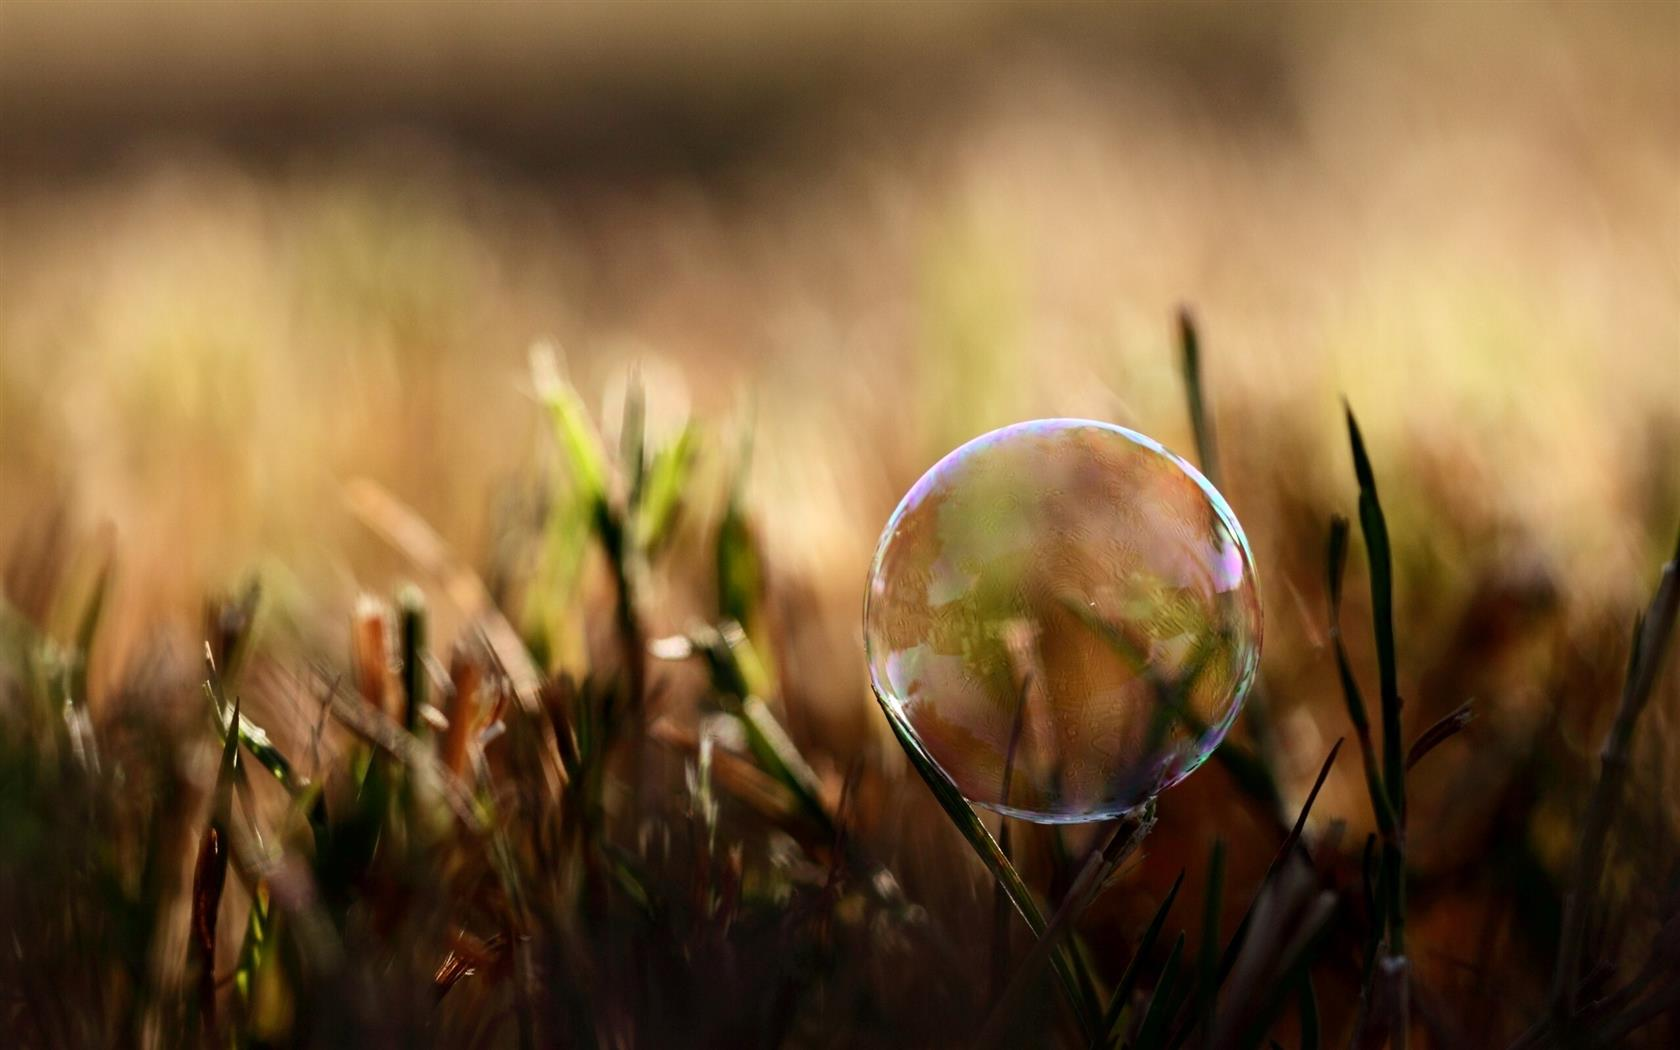 1680x1050 3D Bubble in Grass Wallpaper